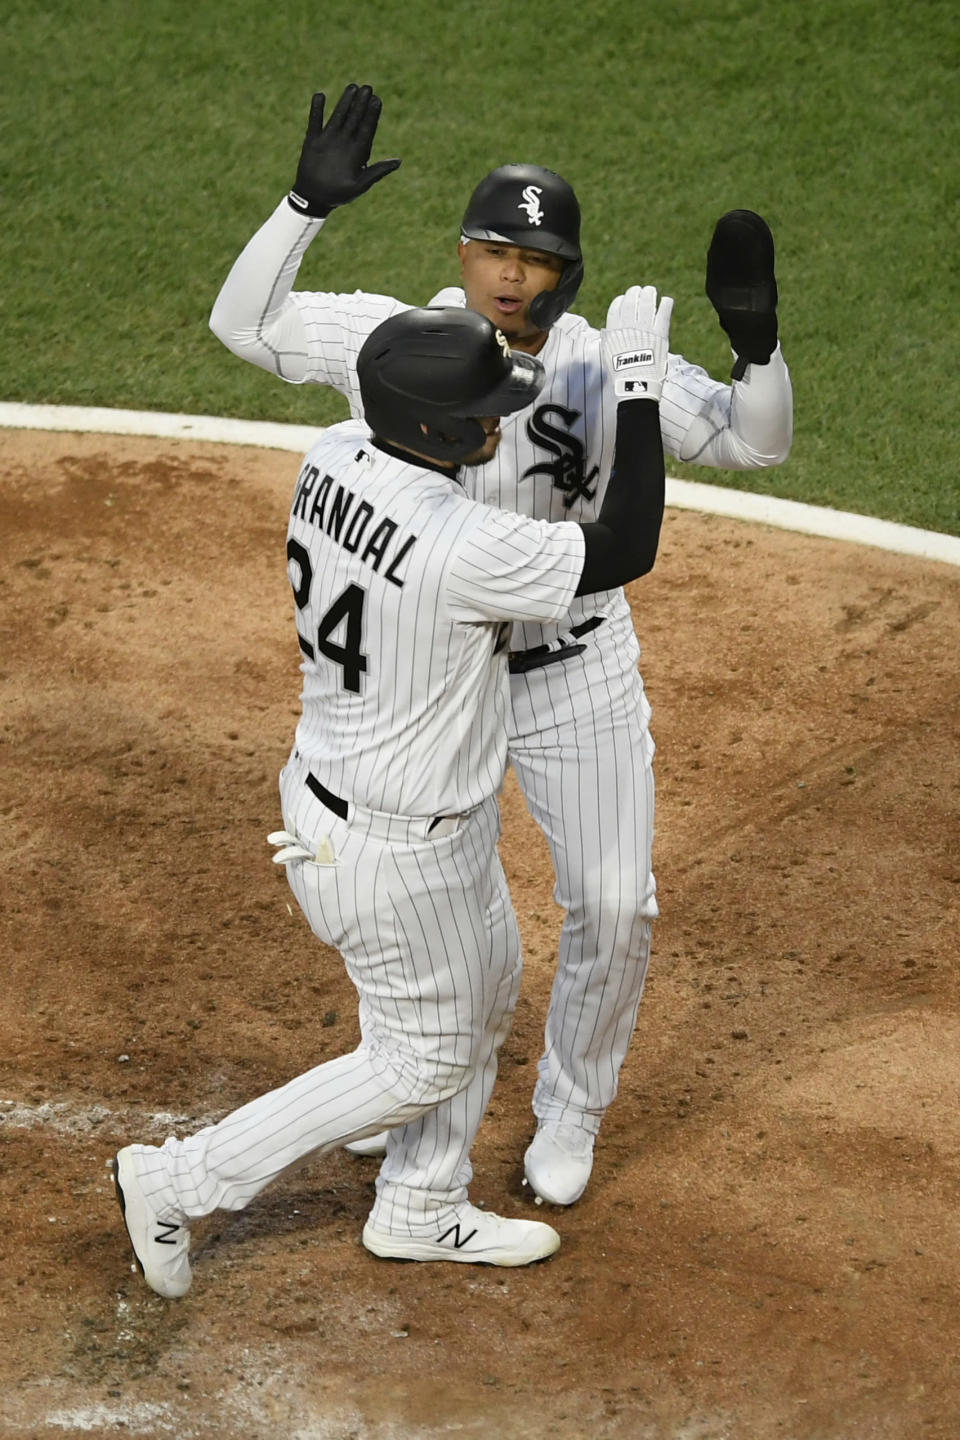 Chicago White Sox's Yasmani Grandal (24) celebrates with Yermín Mercedes at home plate after hitting a three-run home run during the second inning of the team's baseball game against the Minnesota Twins on Tuesday, May 11, 2021, in Chicago. (AP Photo/Paul Beaty)